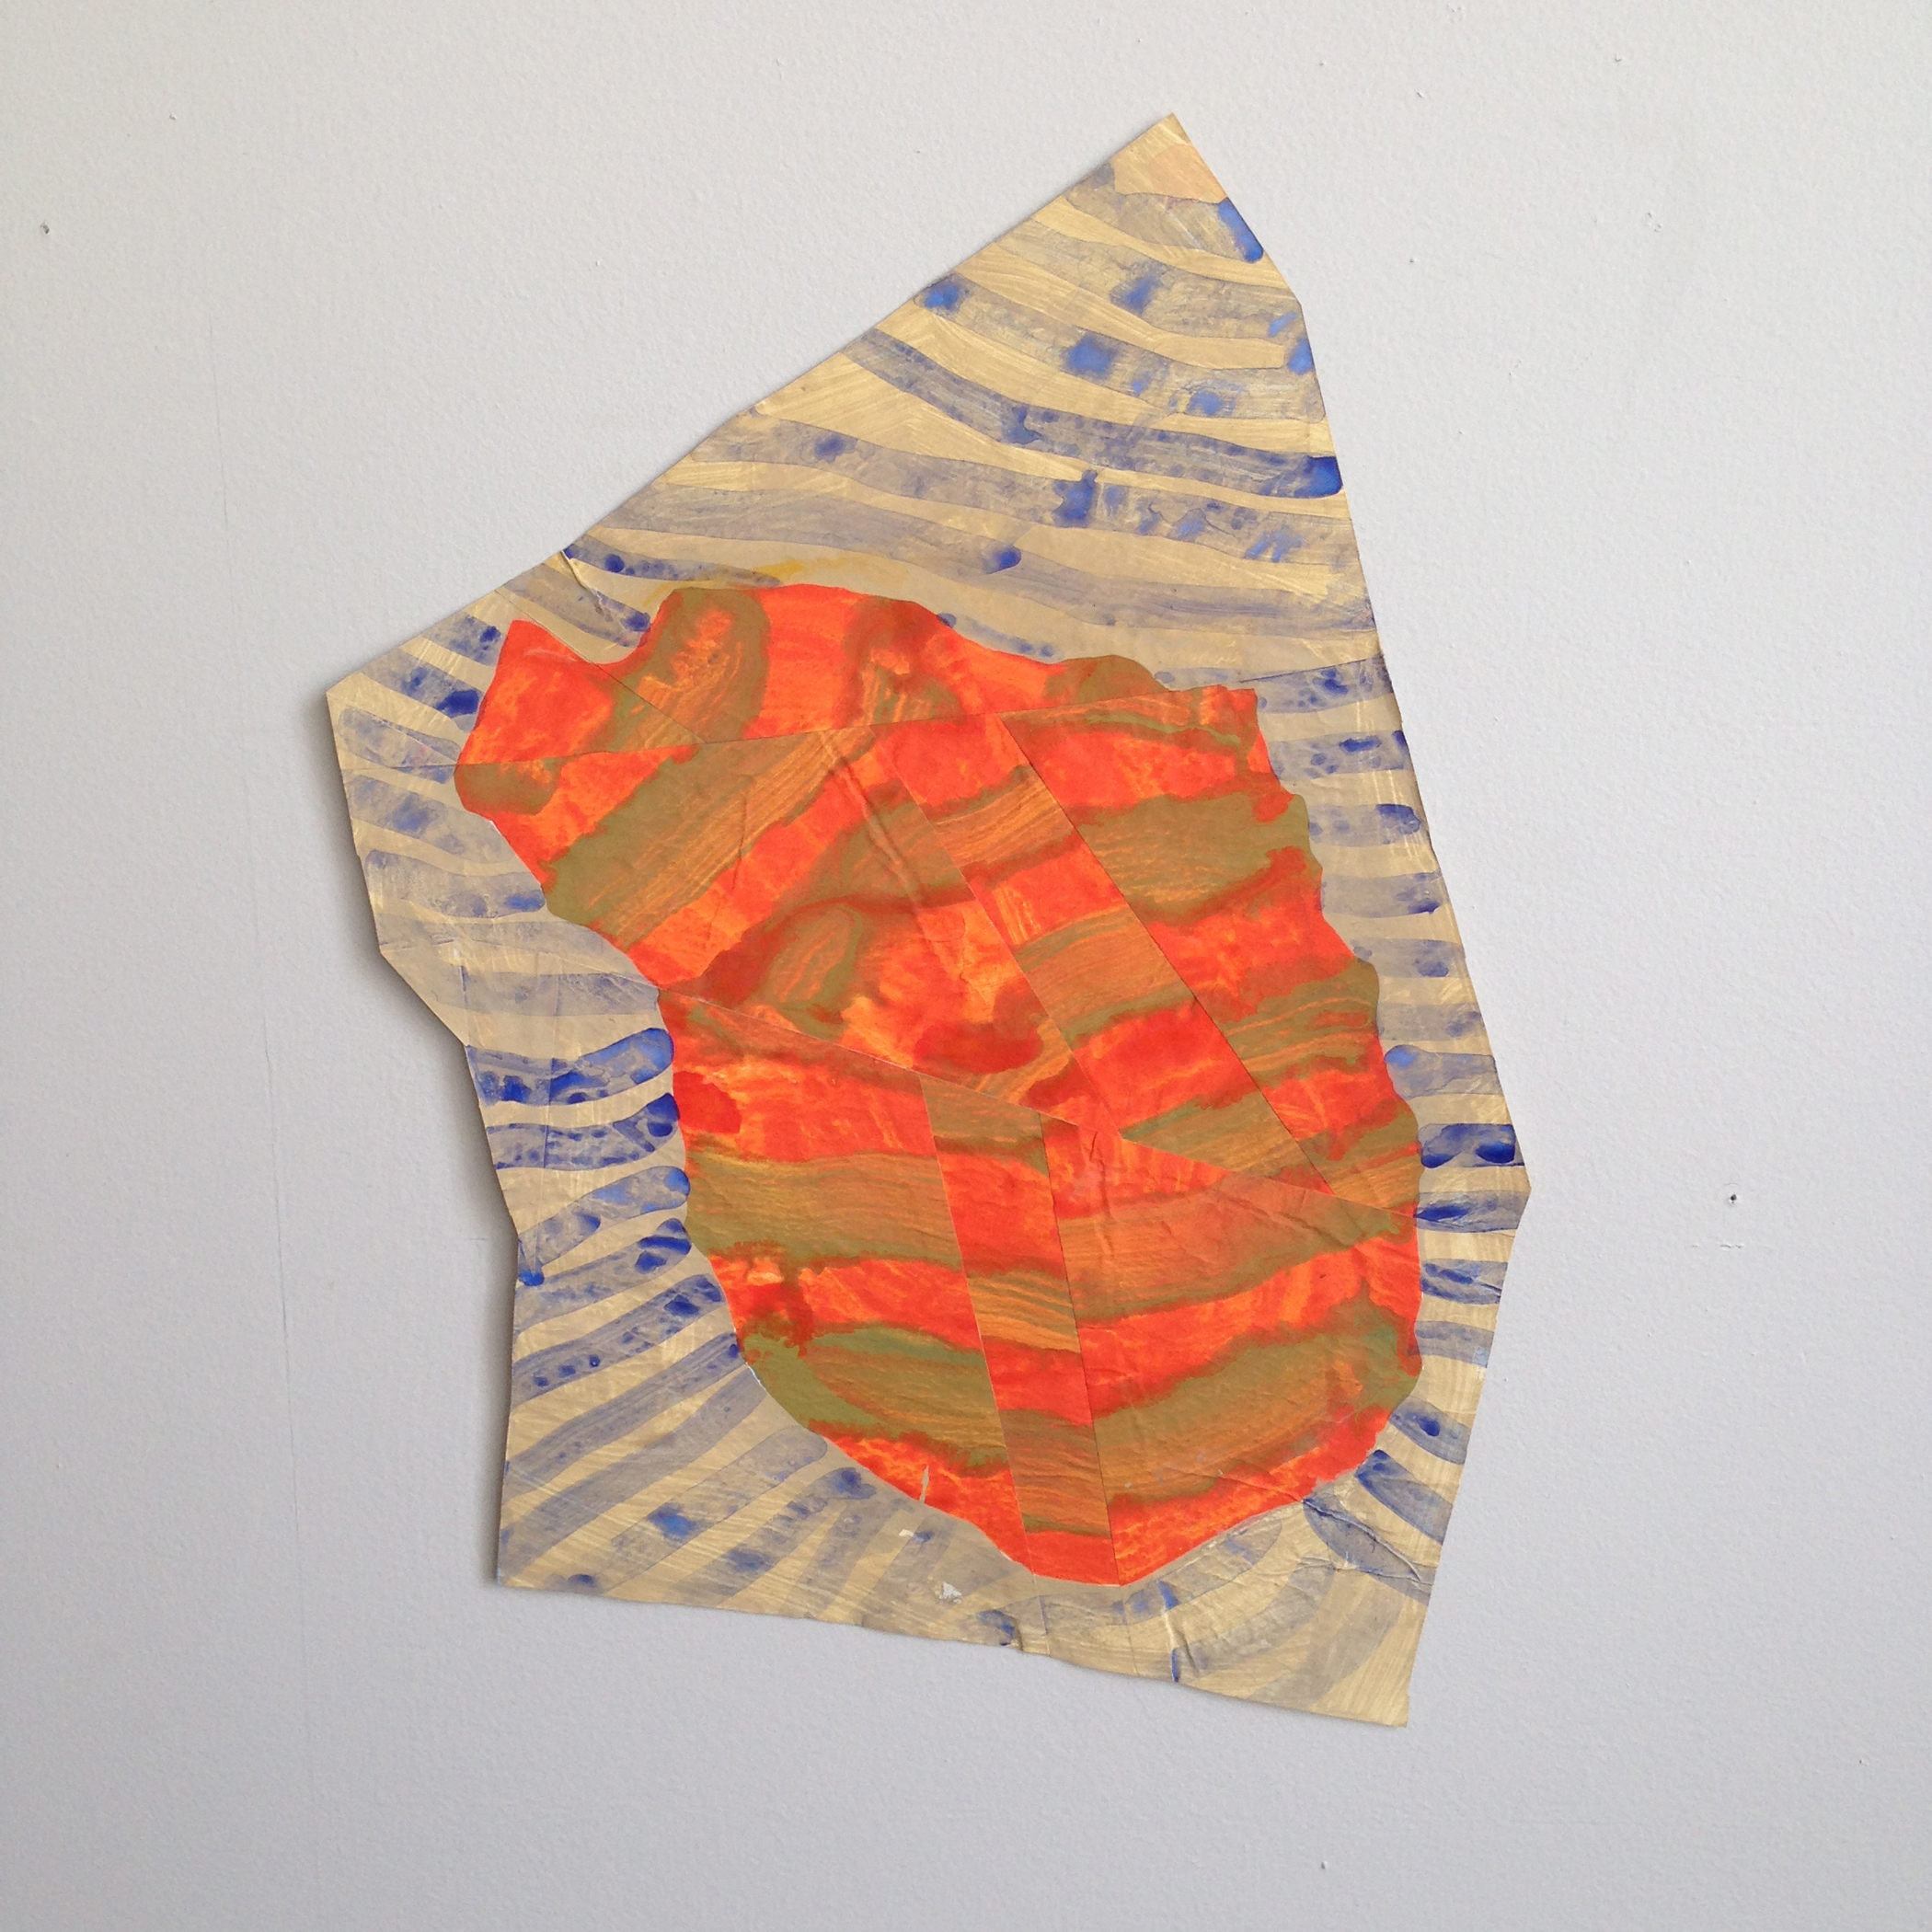 Disrupted Drawing Small 17, 2015, gesso and acrylic with collage on rice paper, 17 X 11 3/4""